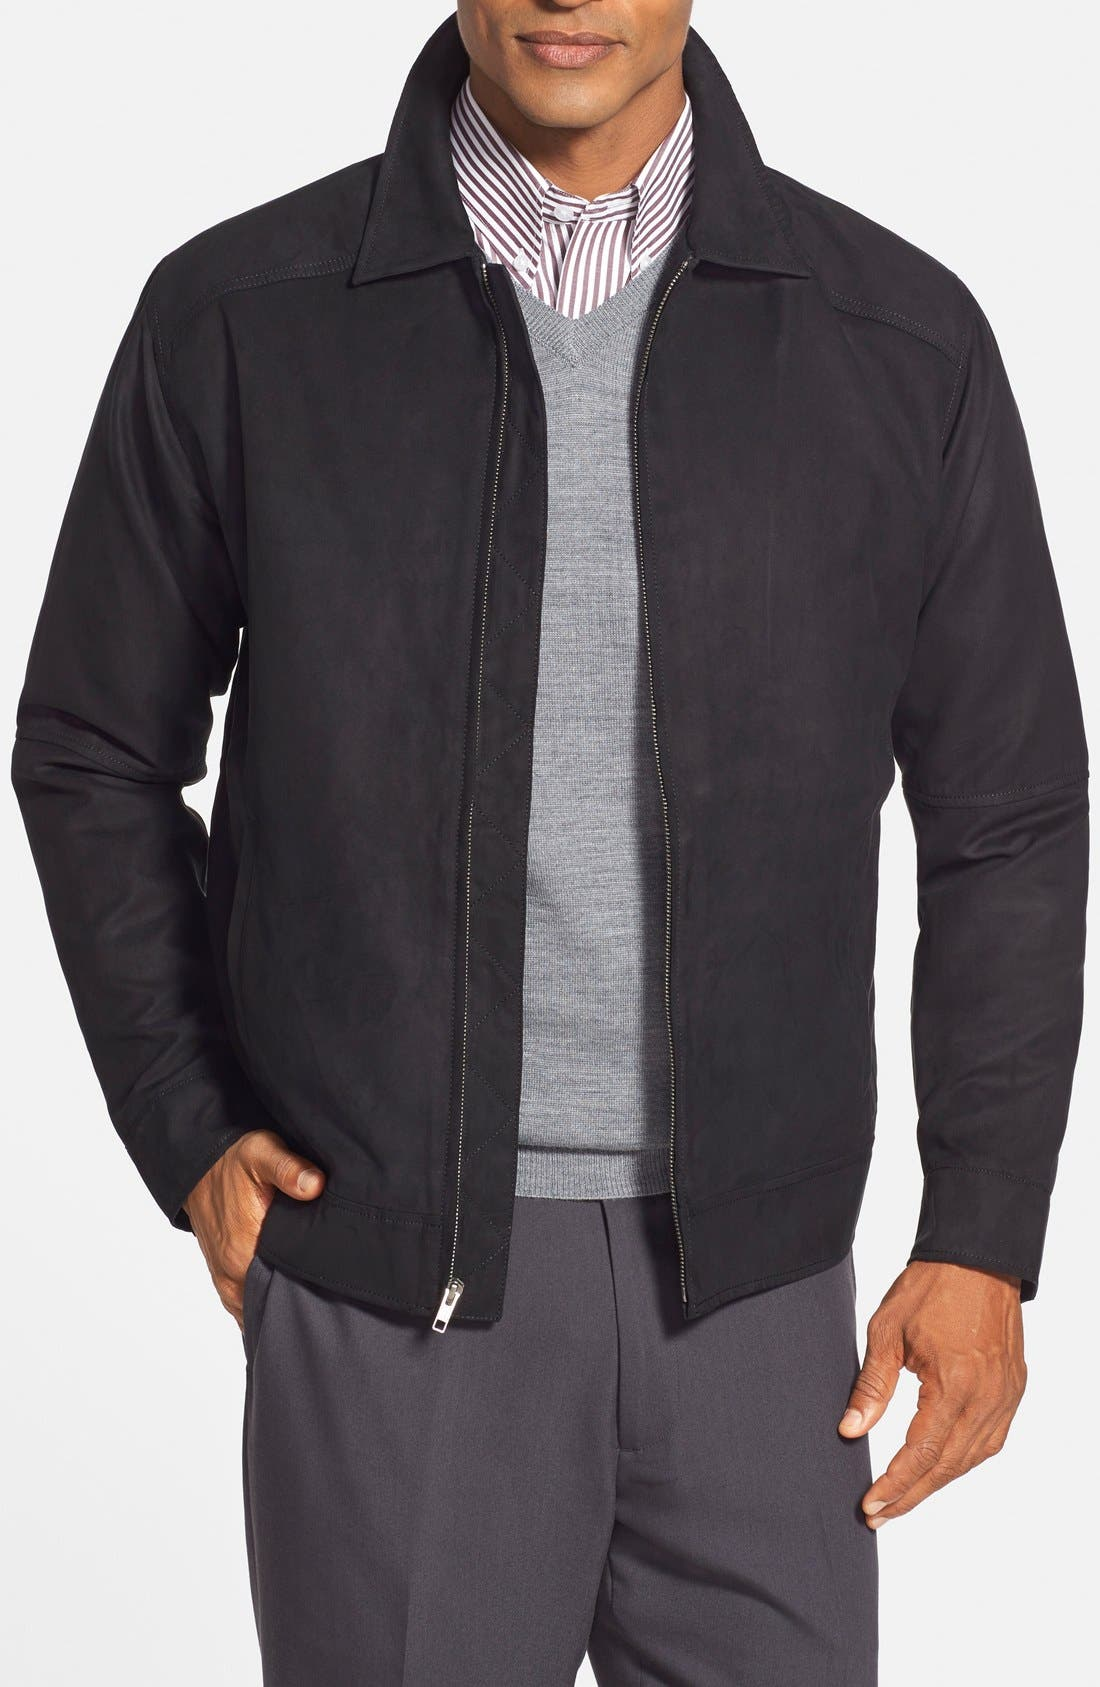 'Roosevelt' Classic Fit Water Resistant Full Zip Jacket,                             Main thumbnail 1, color,                             001